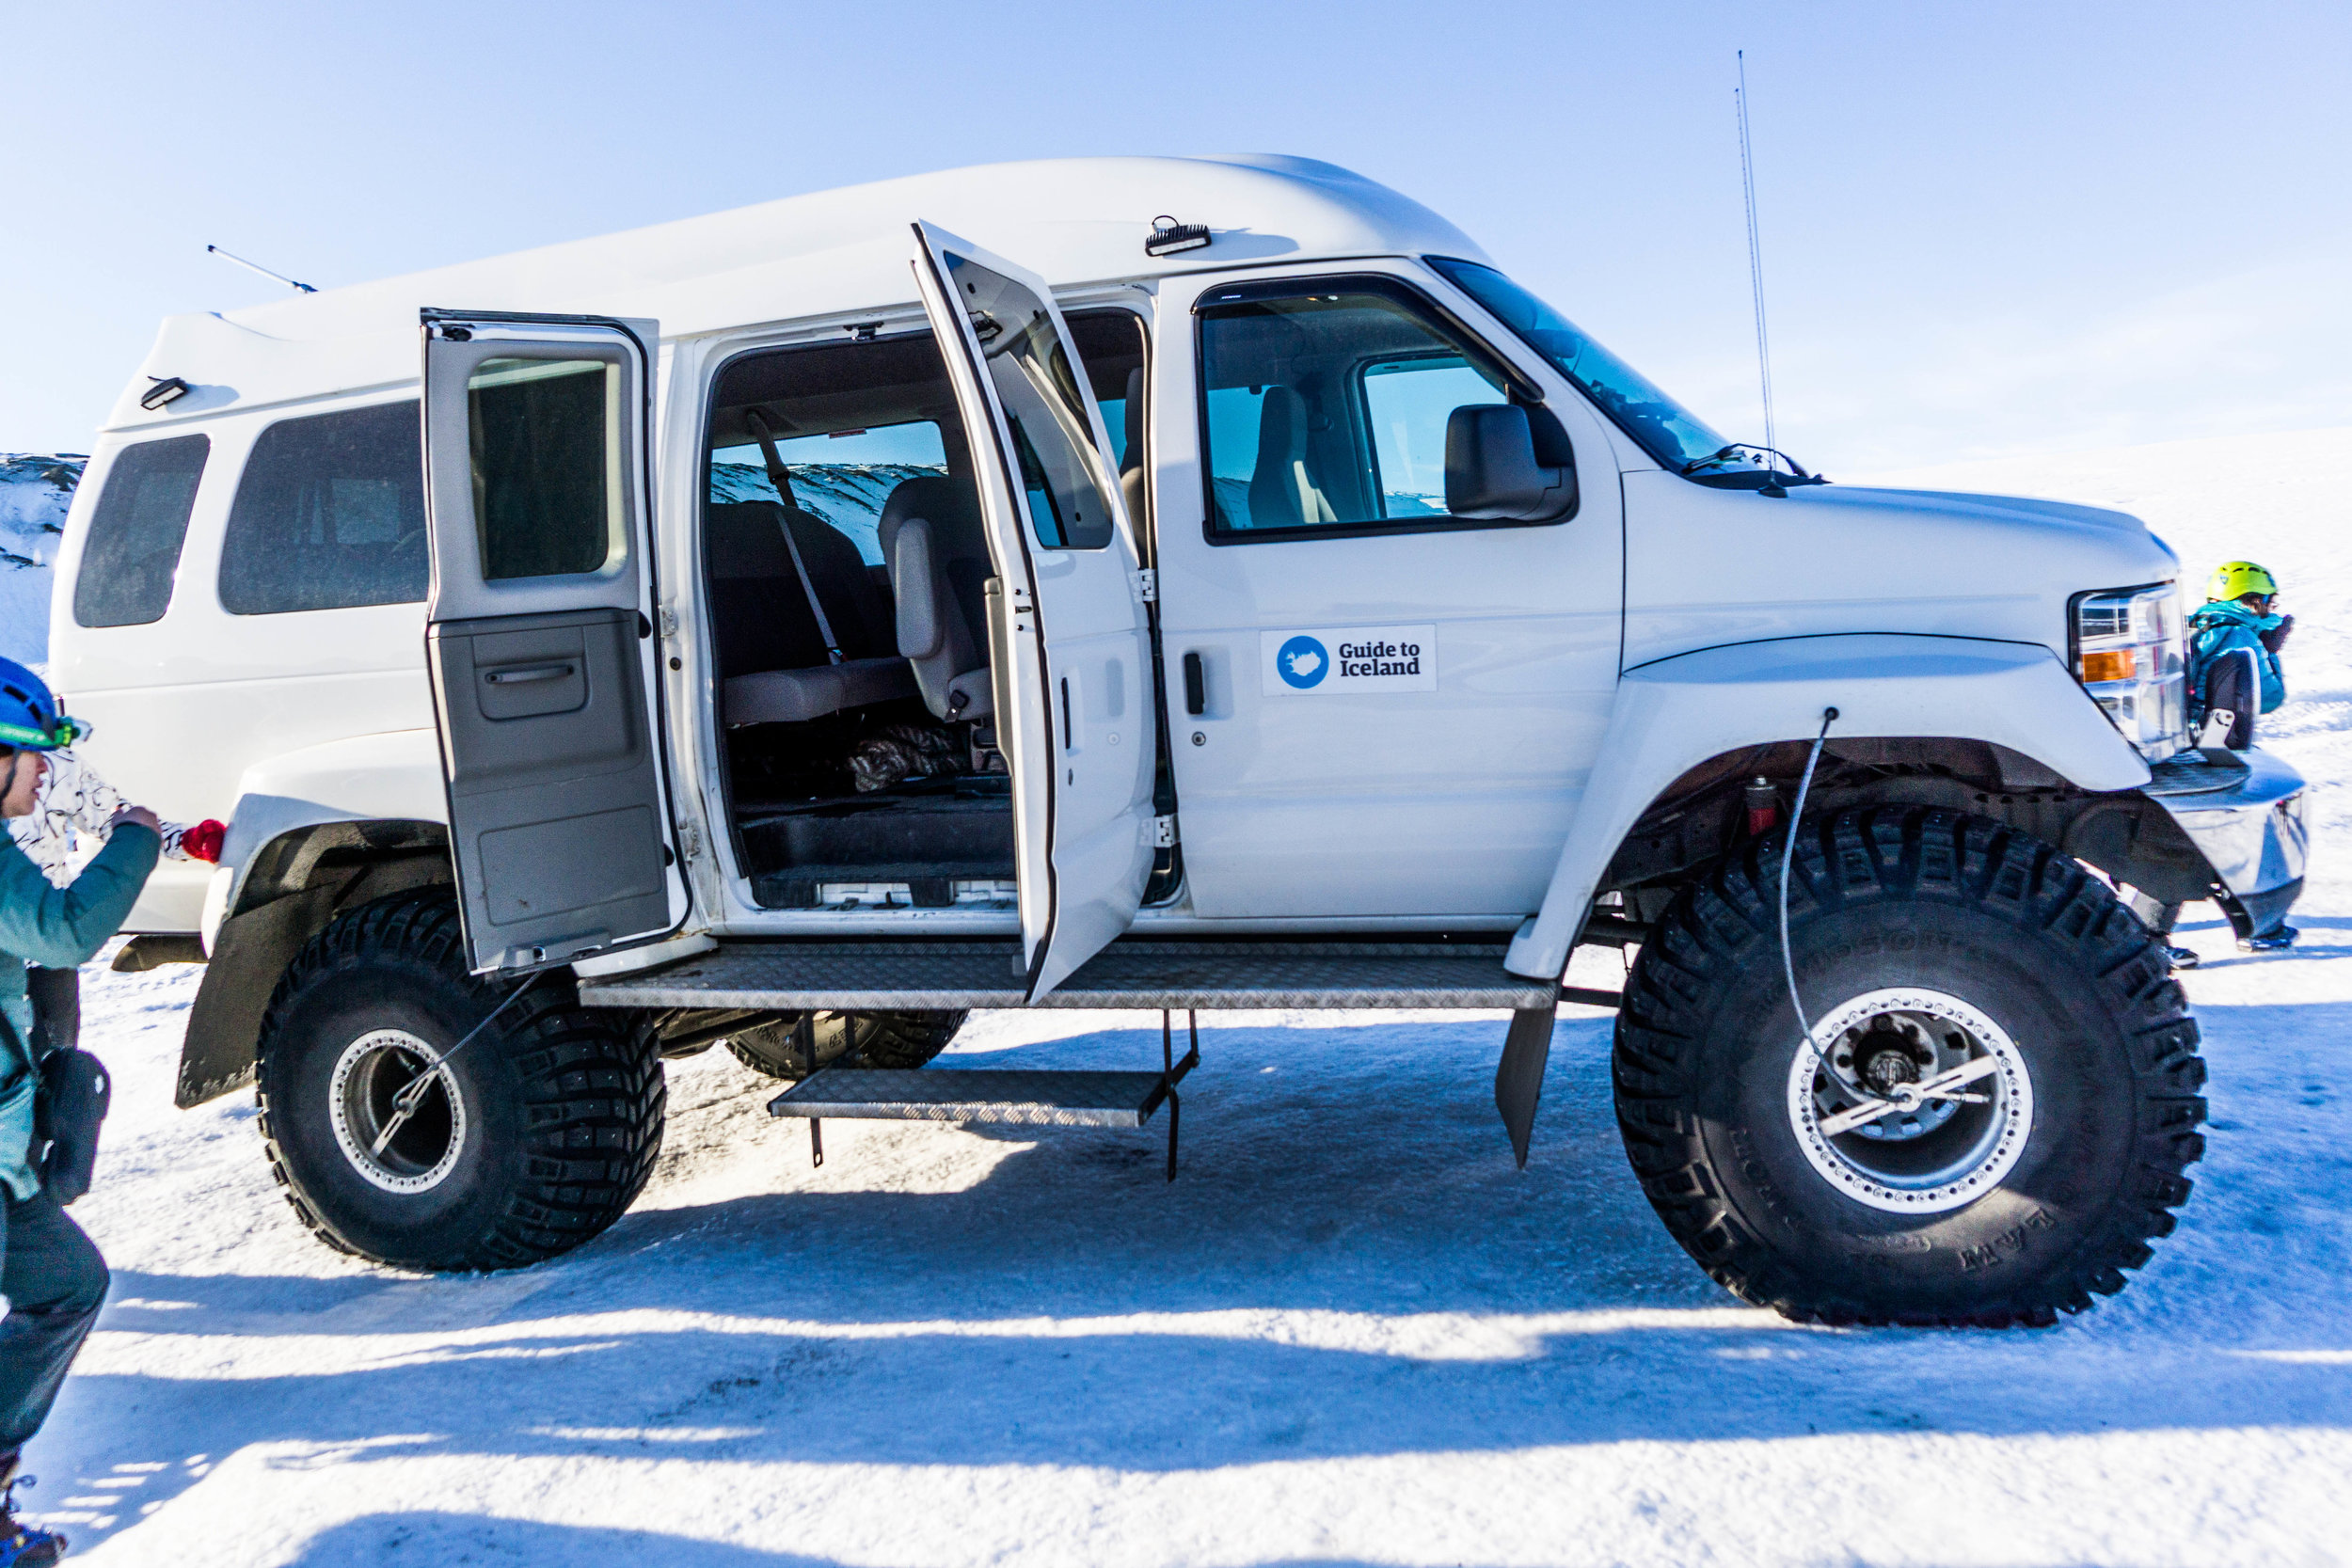 Monster truck for one heck of a glacier ride